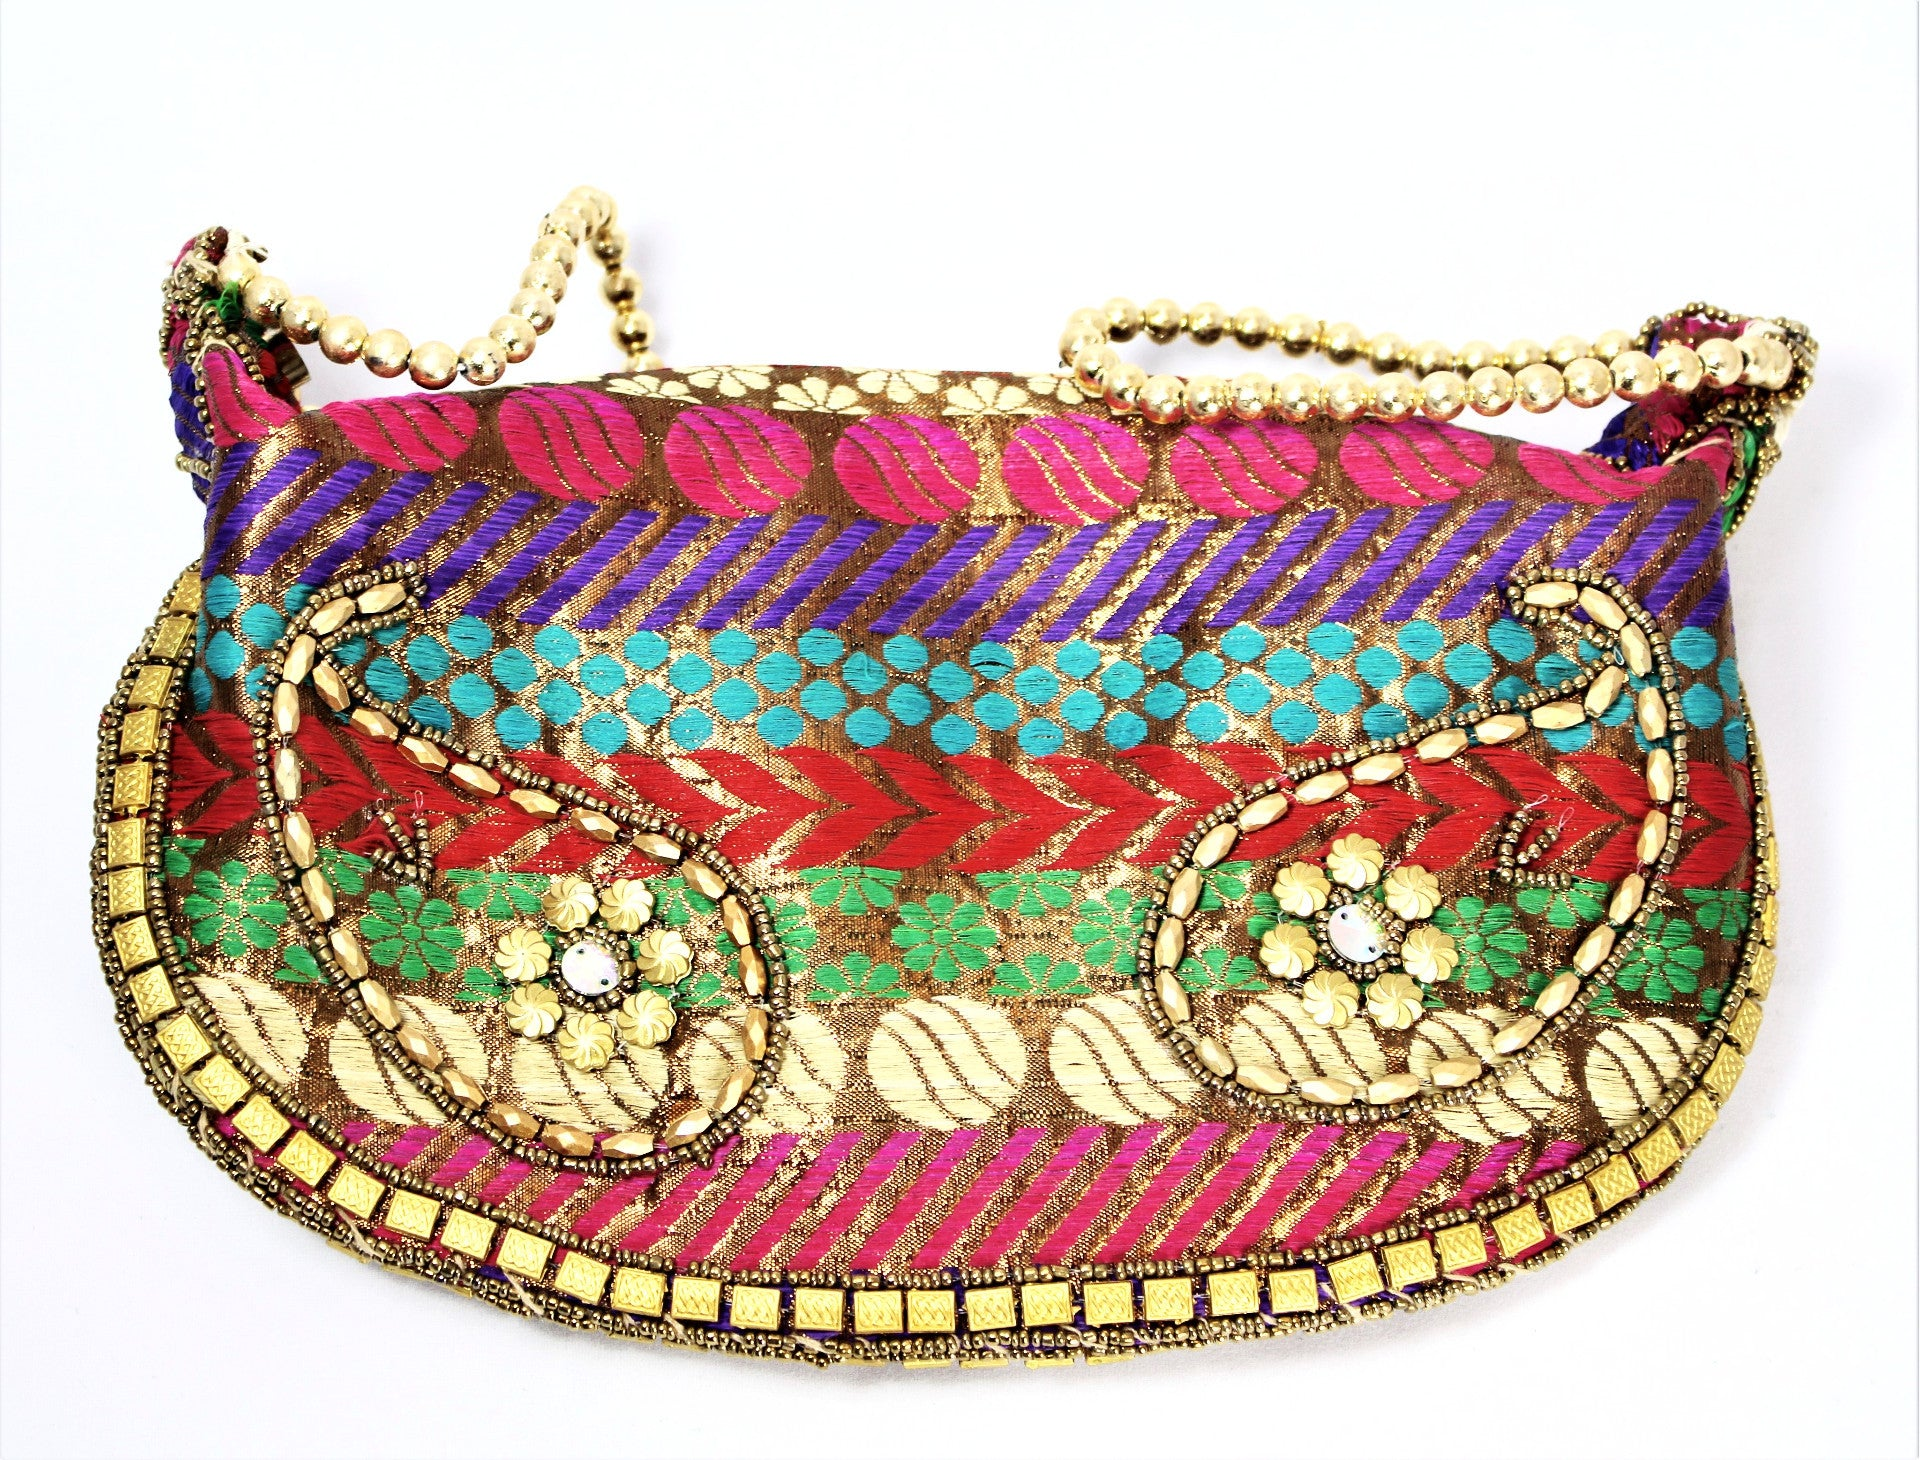 Handmade Metallic Paisley Print Bangle Bag - Bridges to Borders